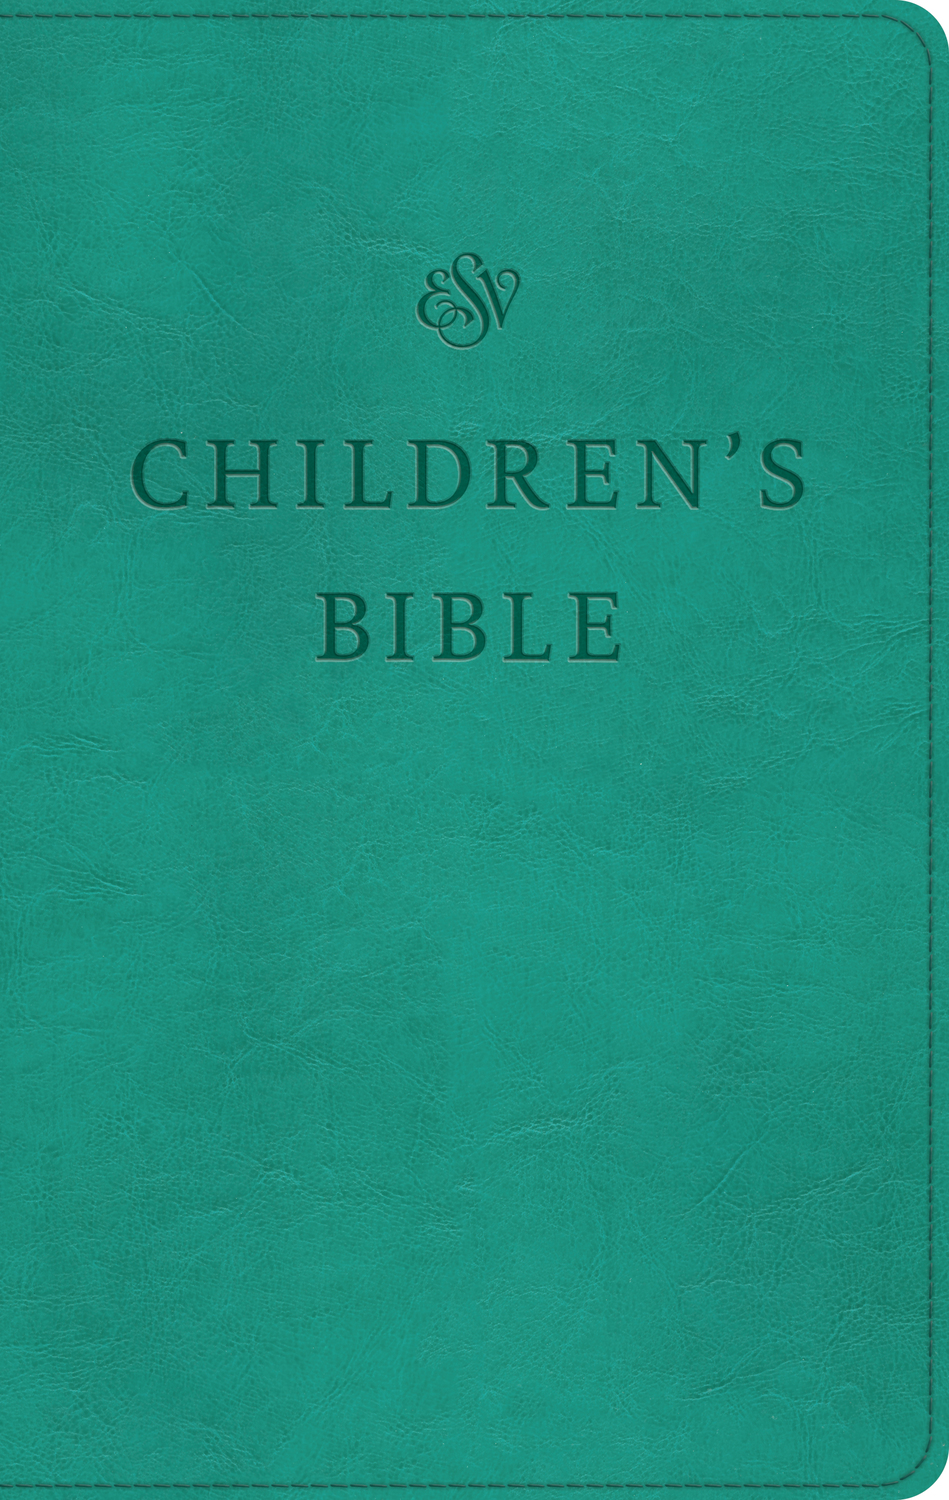 ESV Children's Bible